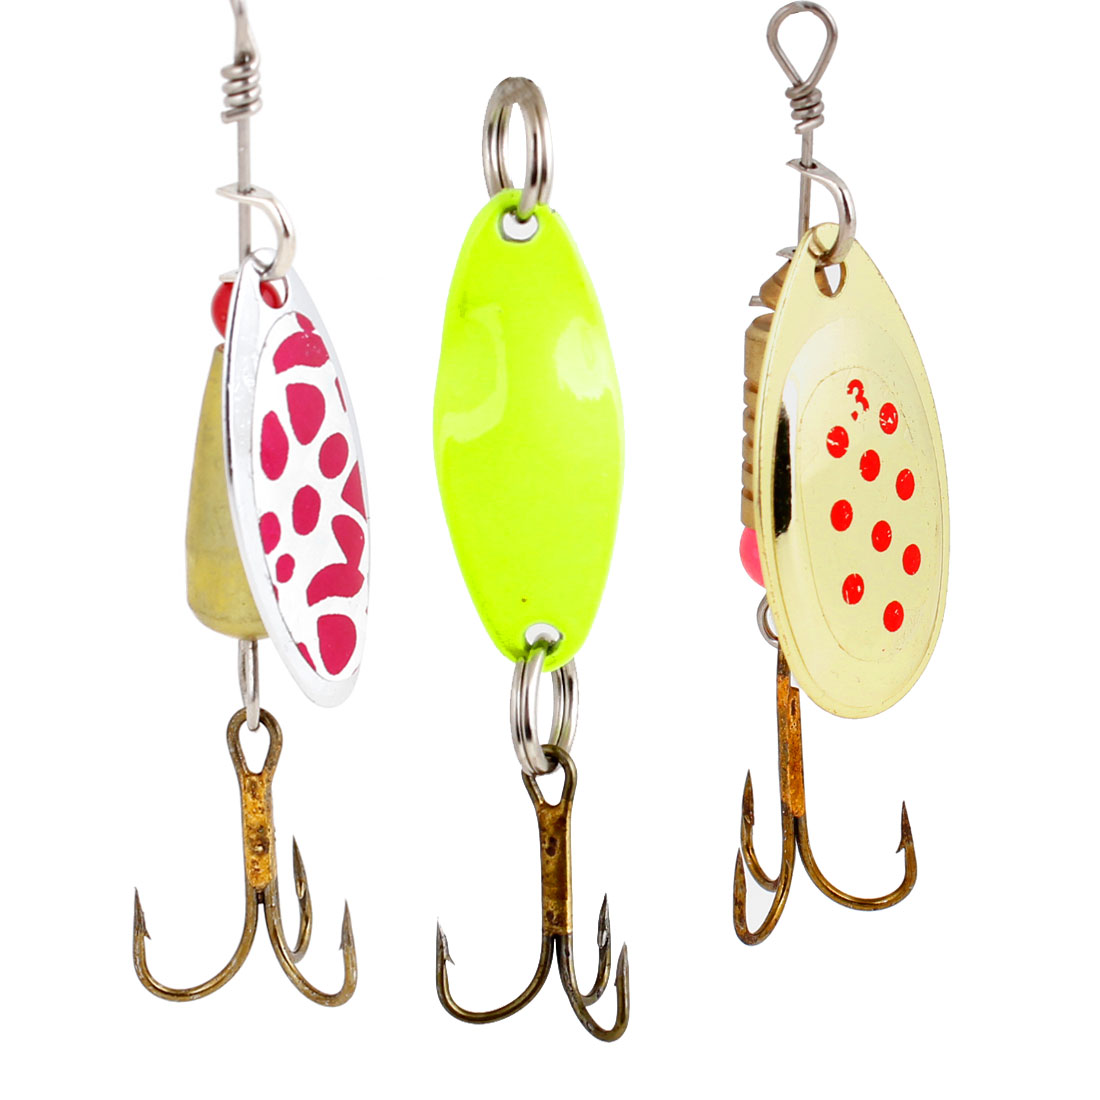 Yellow Gold Tone Metal Triple Hook Tackle for Freshwater Fishing x 3